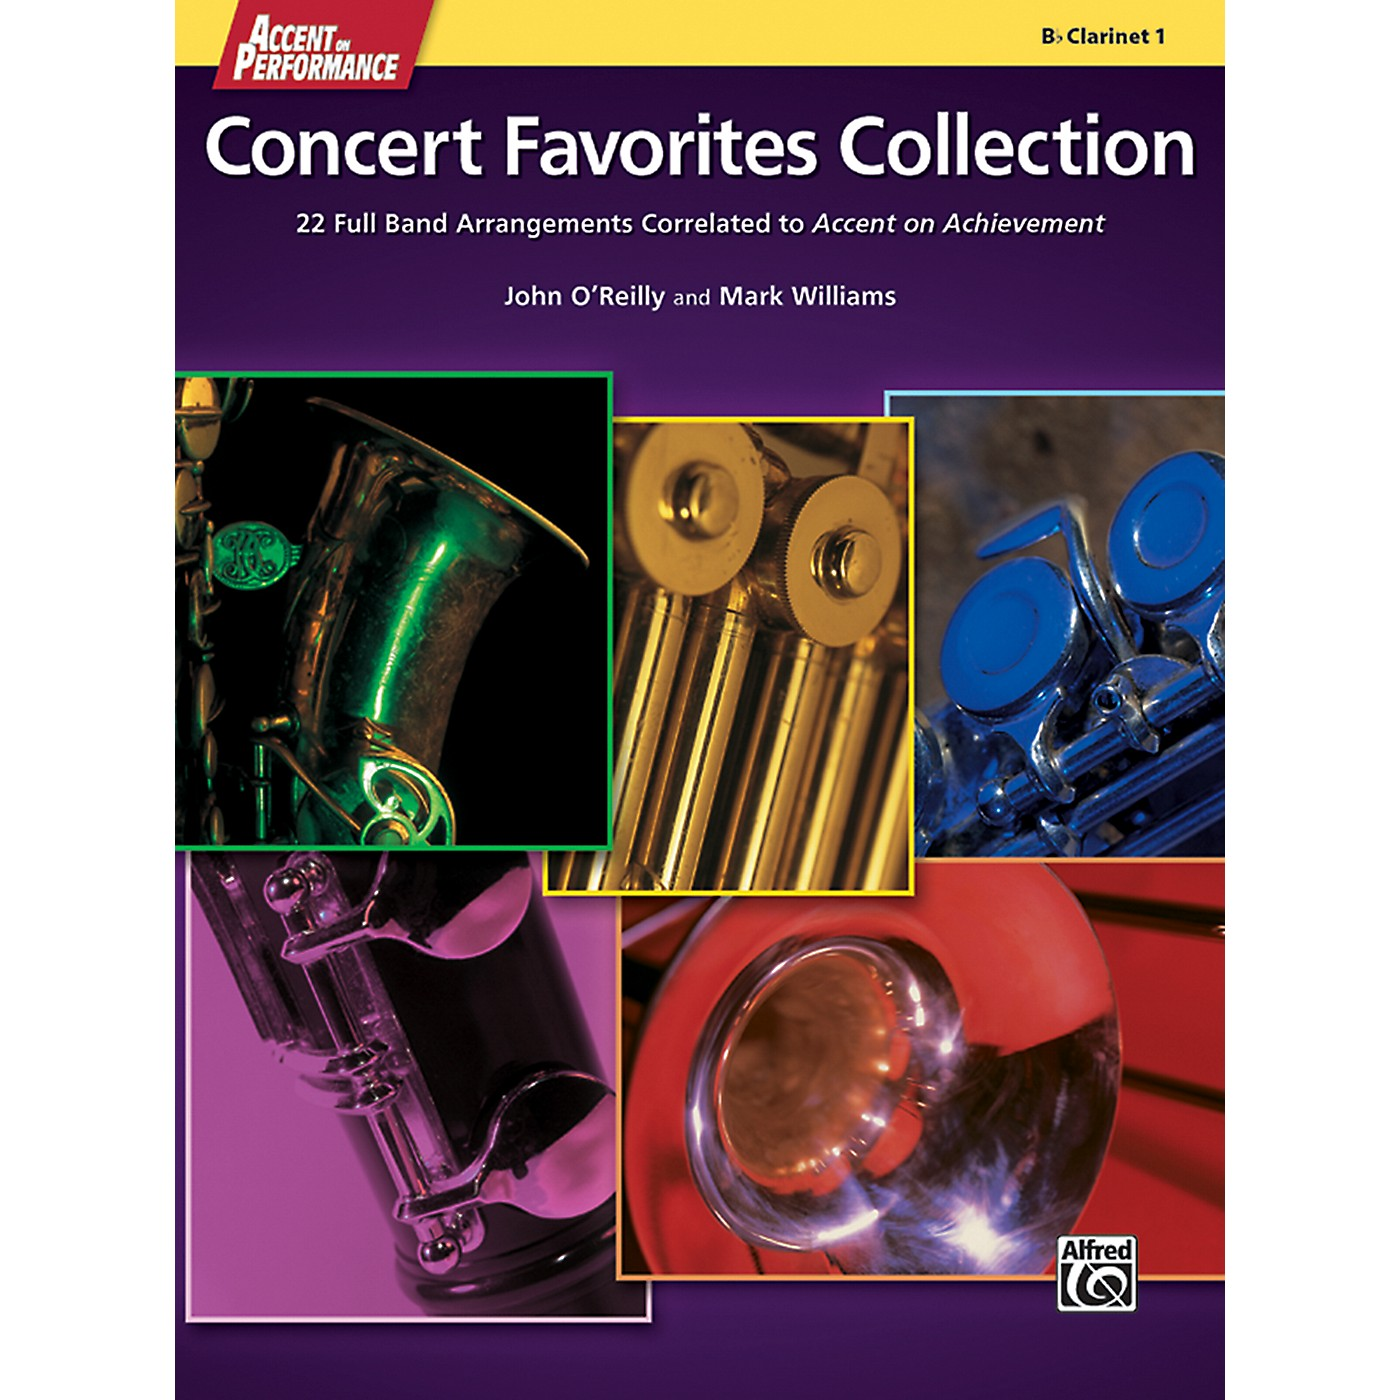 Alfred Accent on Performance Concert Favorites Collection Clarinet 1 Book thumbnail